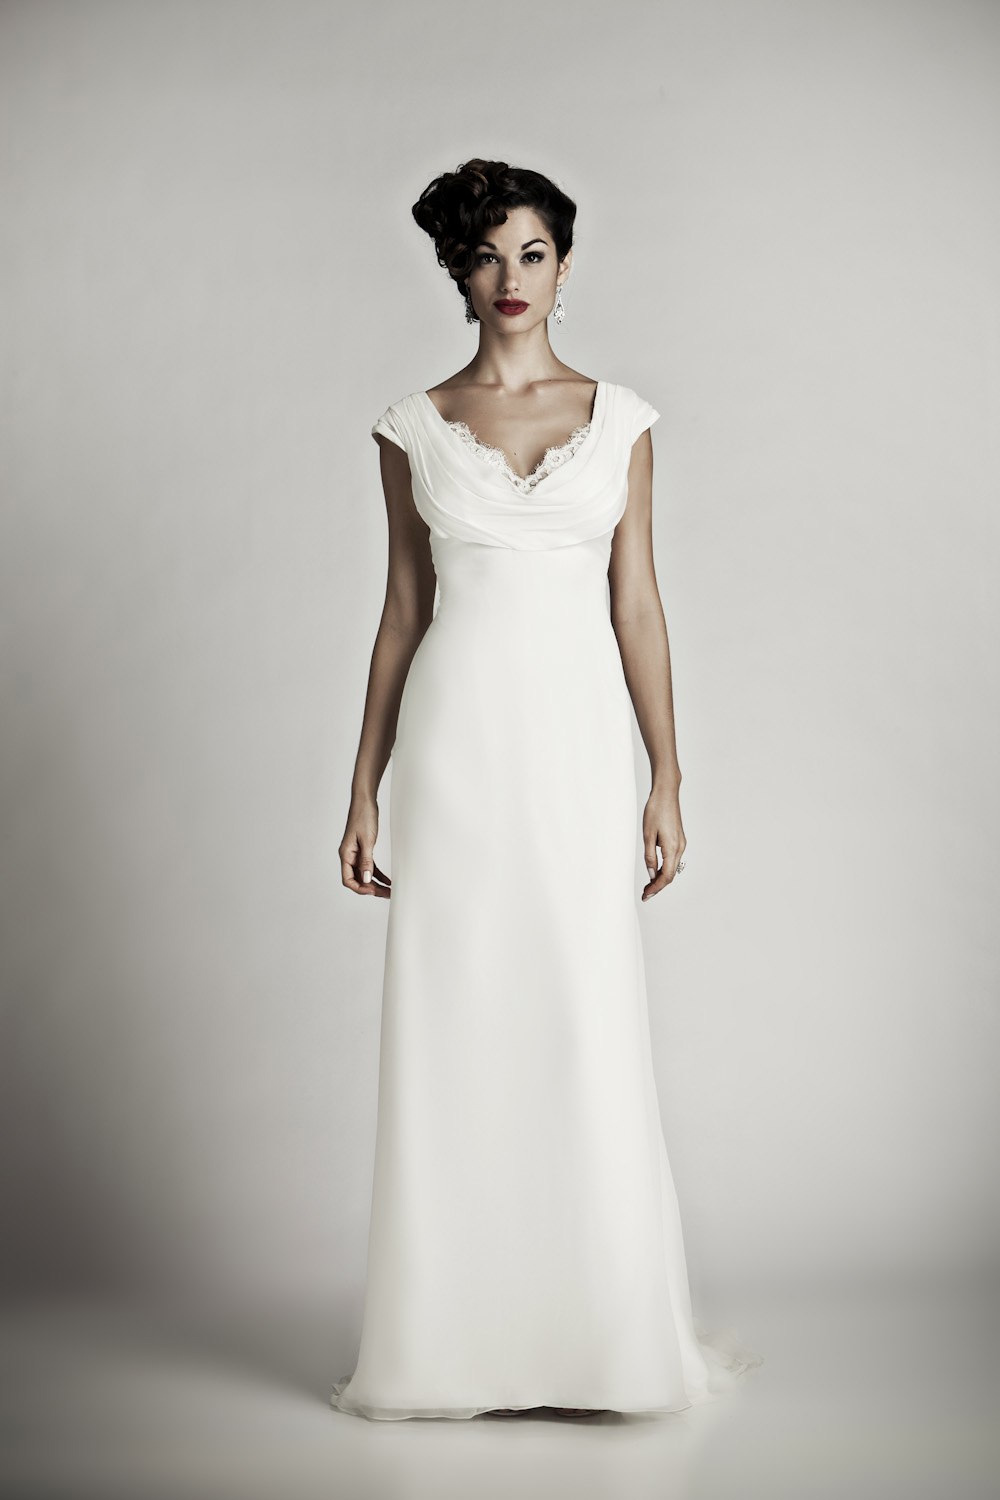 Simple ivory cowl neck column wedding dress like Pippa Middleton's royal wedding gown